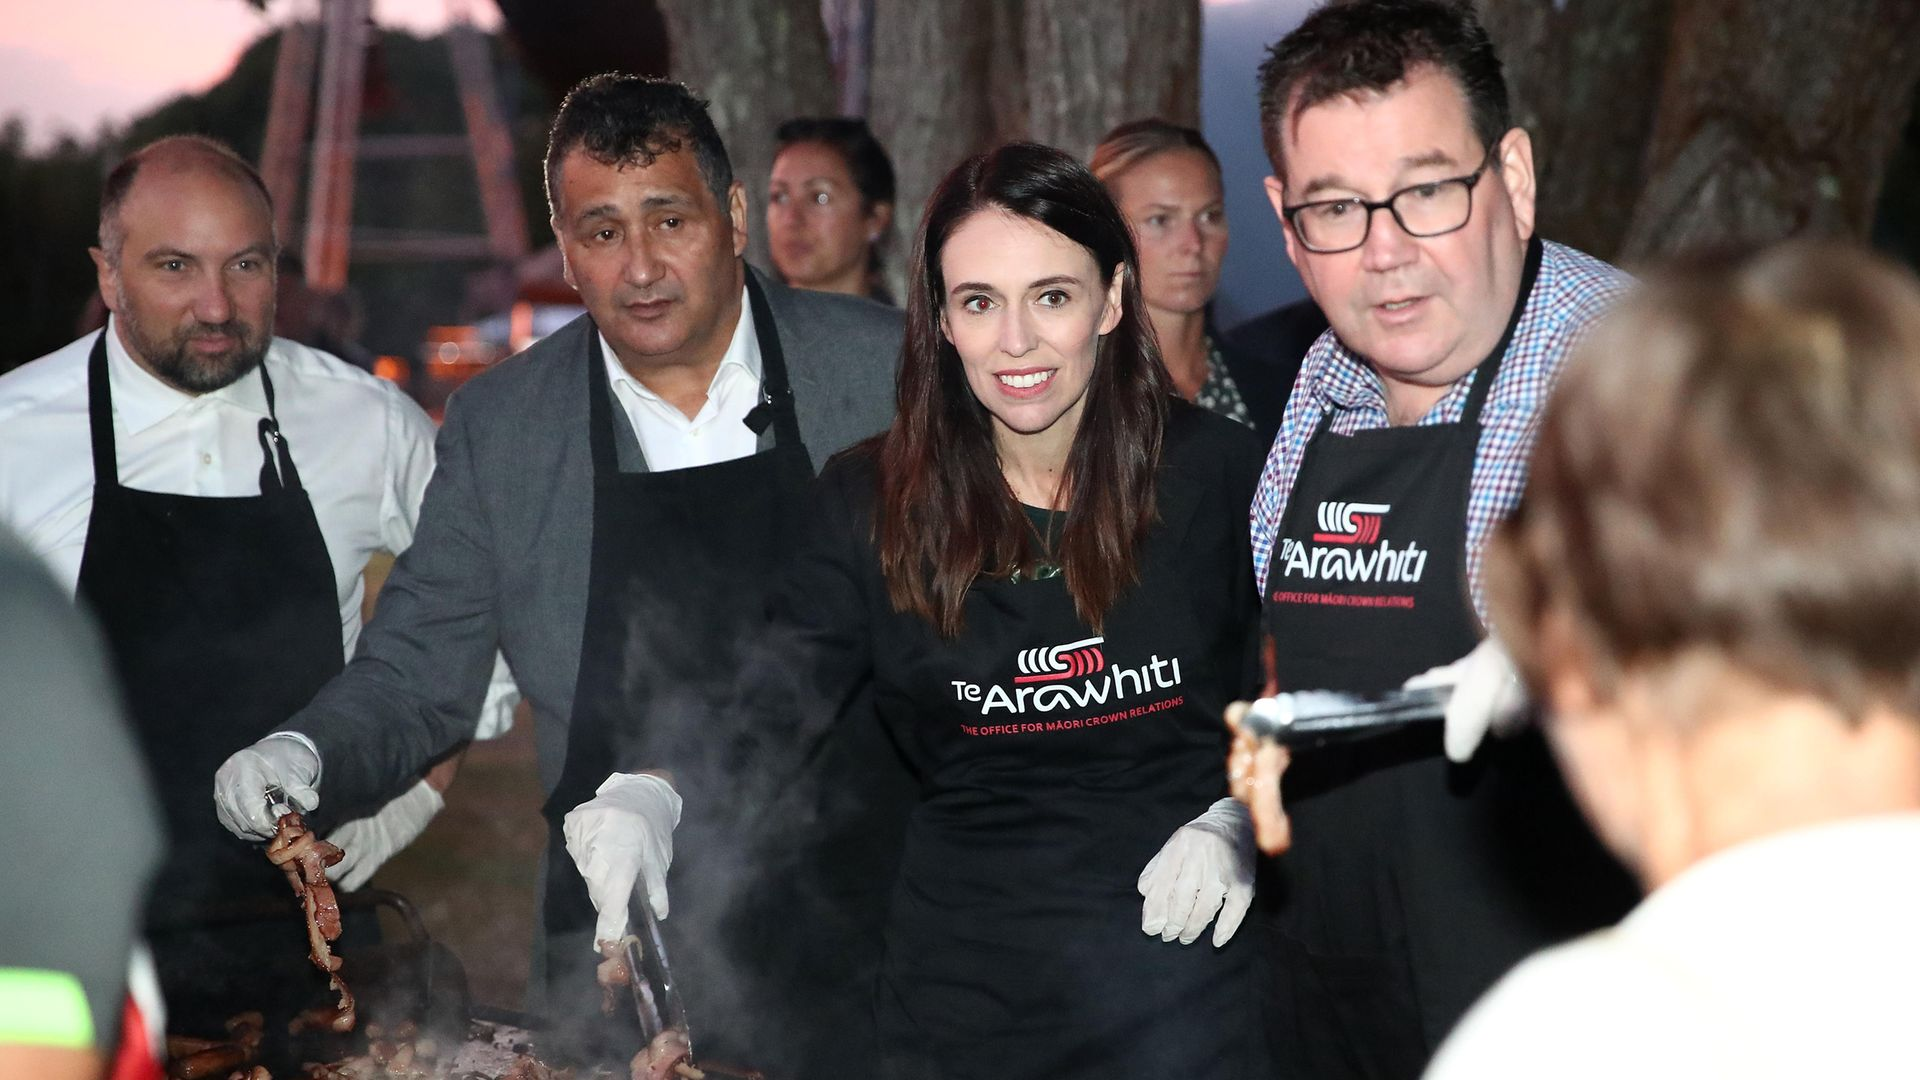 Prime minister Jacinda Ardern and finance minister Grant Robertson cook breakfast for crowds after a dawn service on the Waitangi Day national holiday - Credit: Getty Images